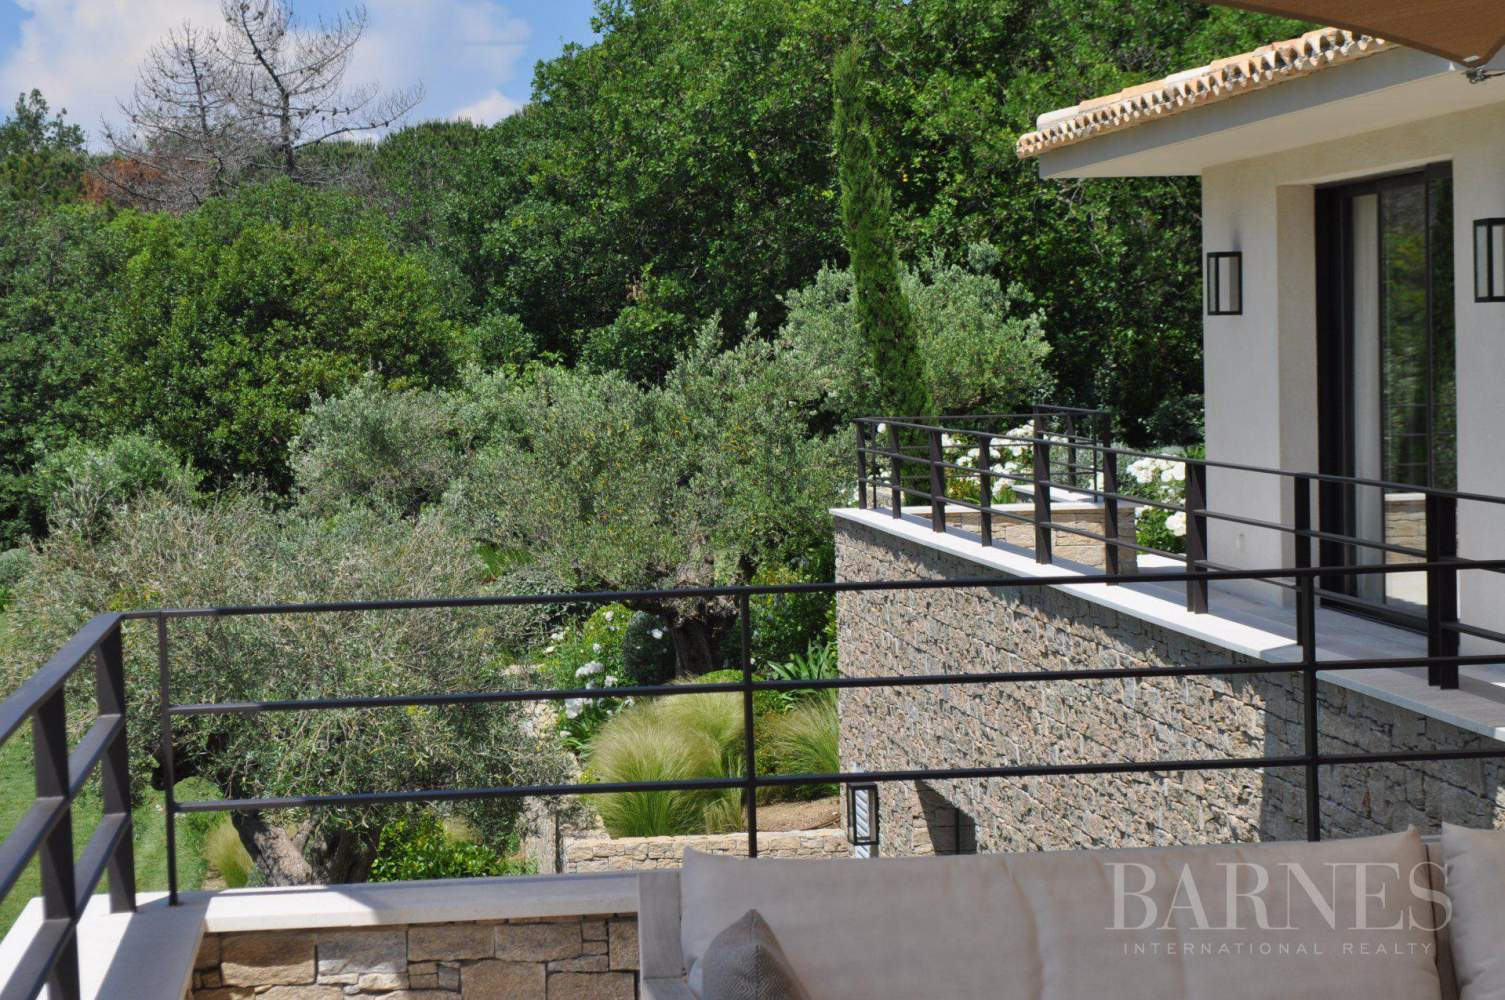 GASSIN - Villa 7 bedrooms - Infinity pool - Golf - Absolute calm and privacy picture 9